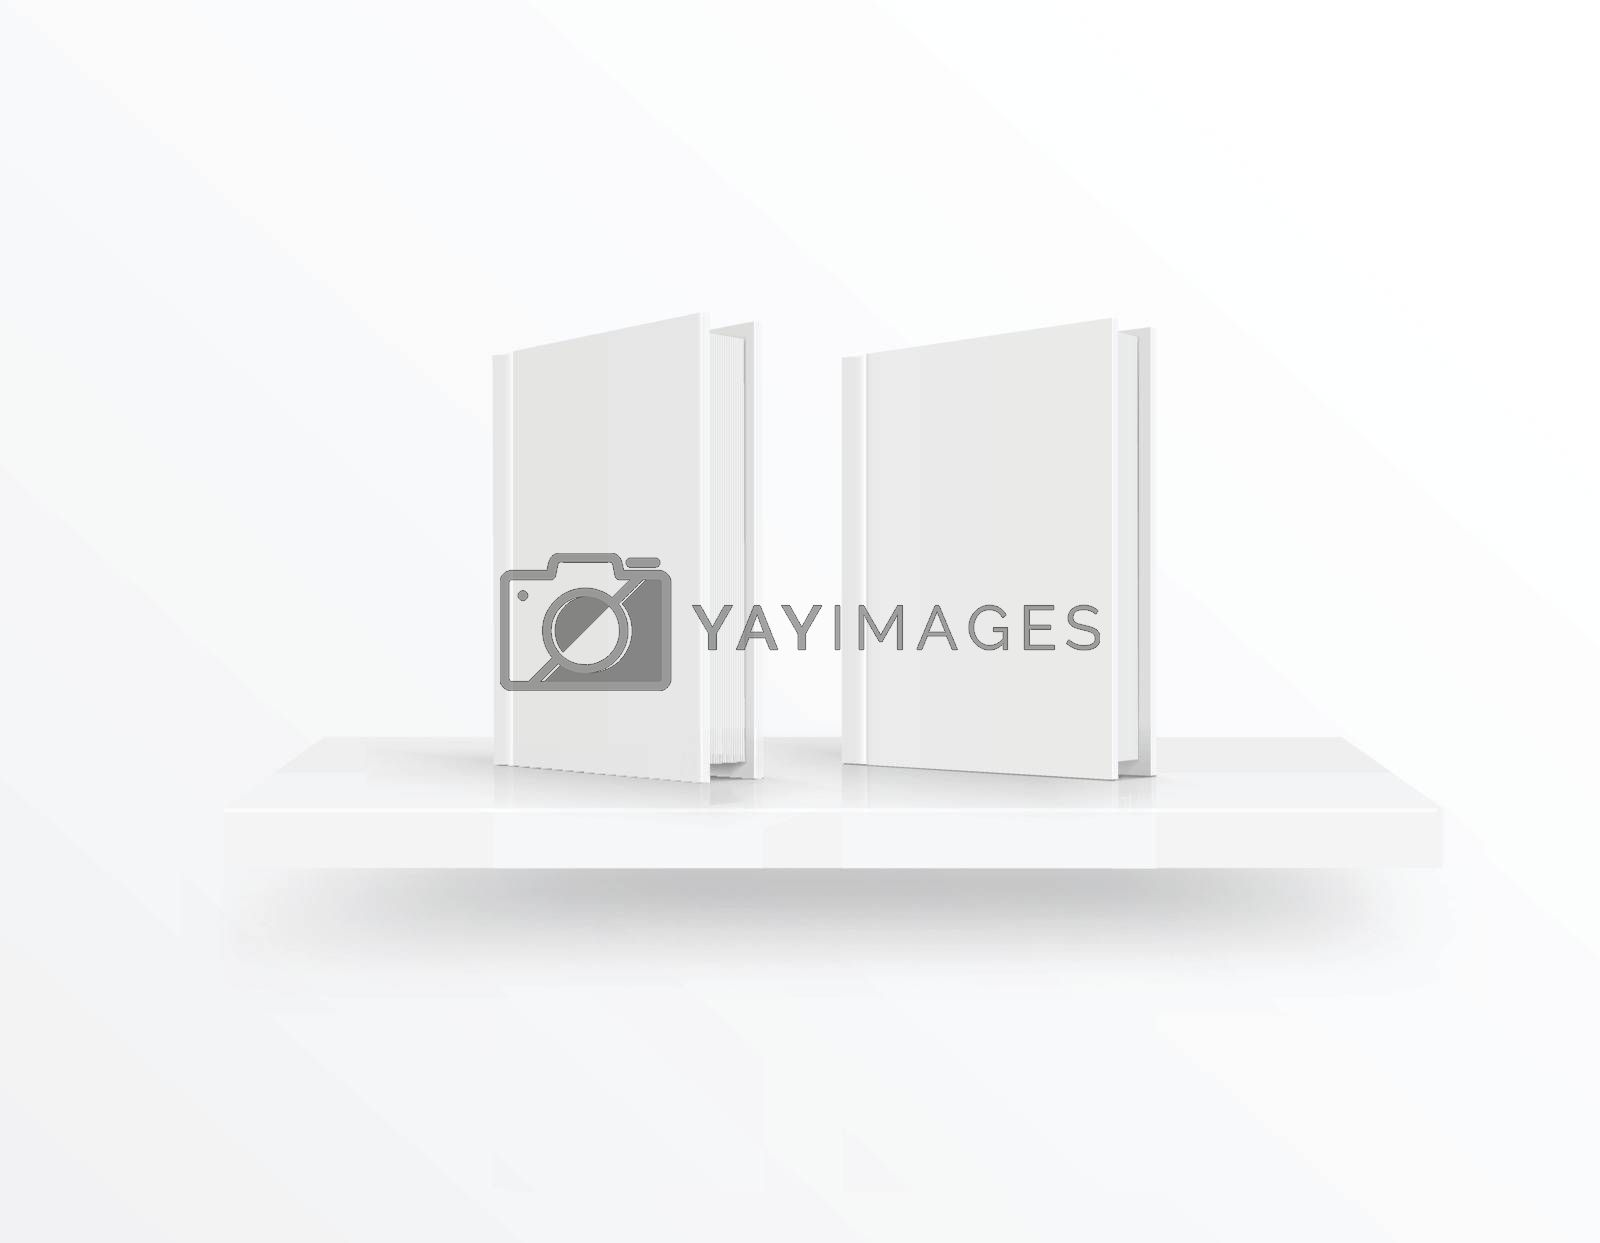 Blank book cover on bookshelf over light background. Vector by sermax55